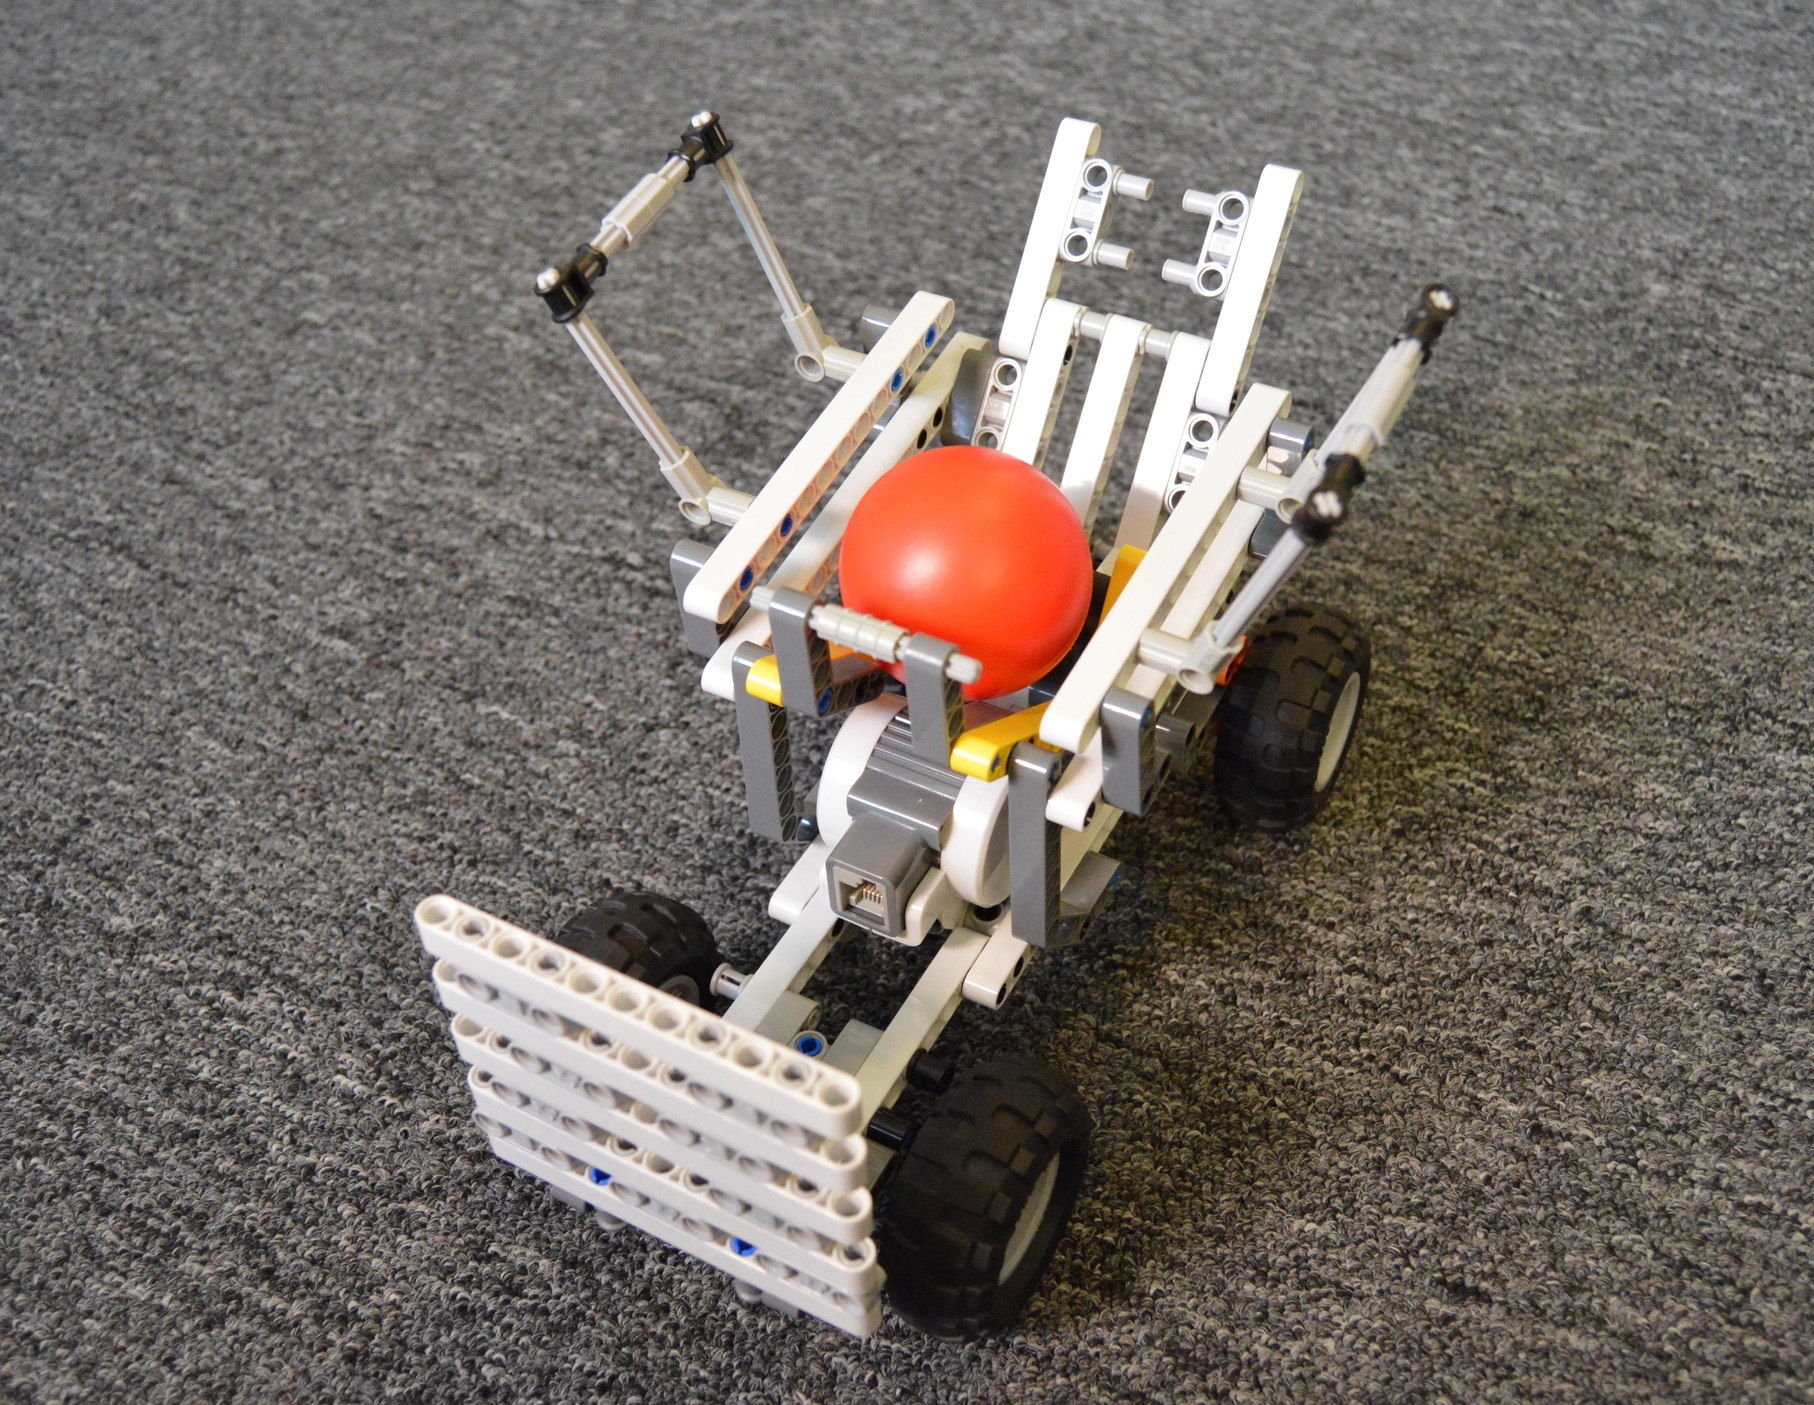 The cart with a large basket to give the best chance of catching the ball